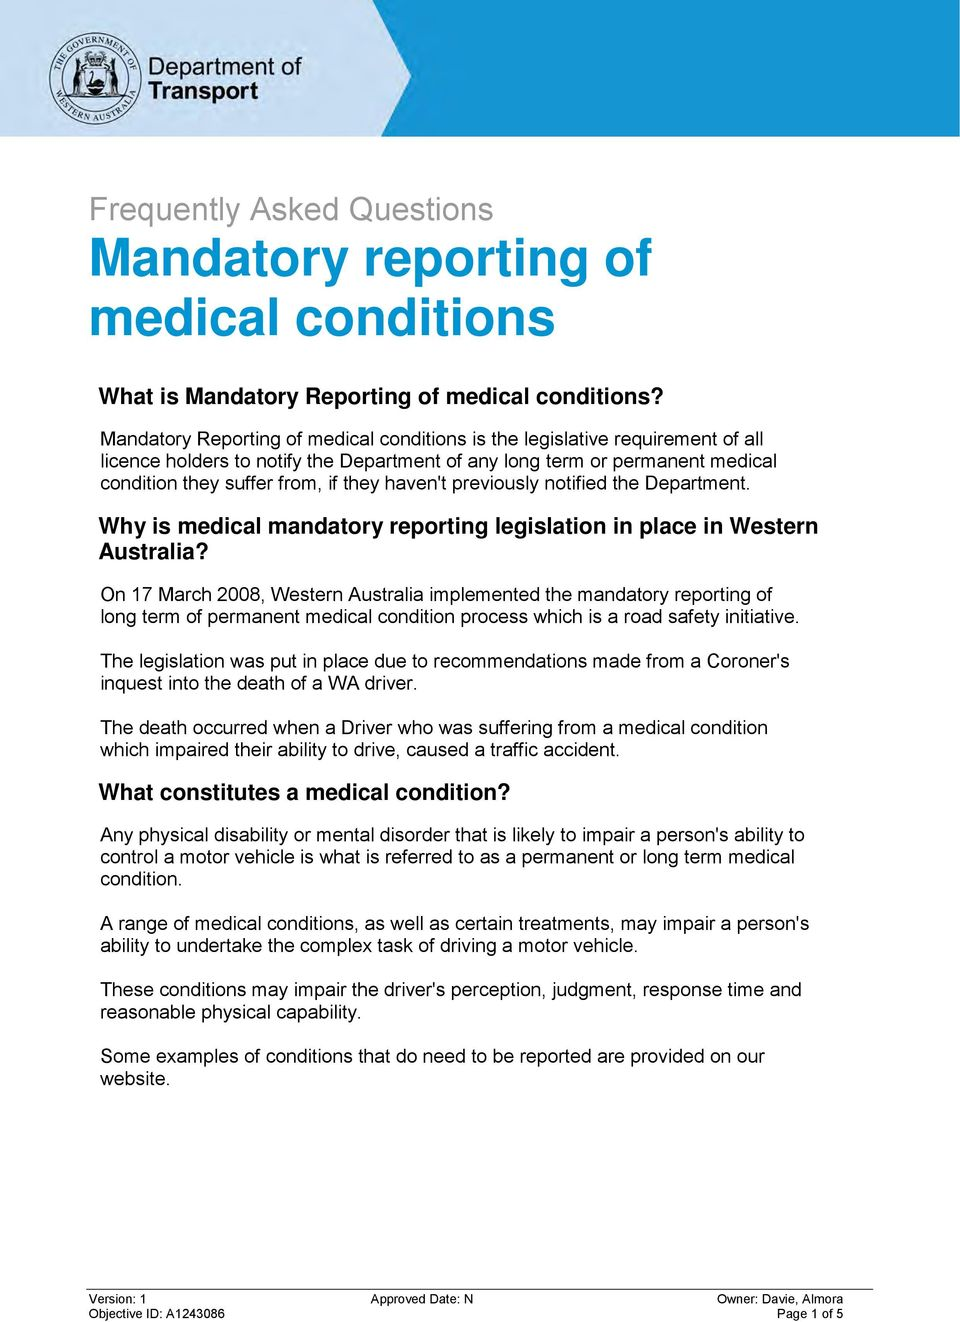 haven't previously notified the Department. Why is medical mandatory reporting legislation in place in Western Australia?